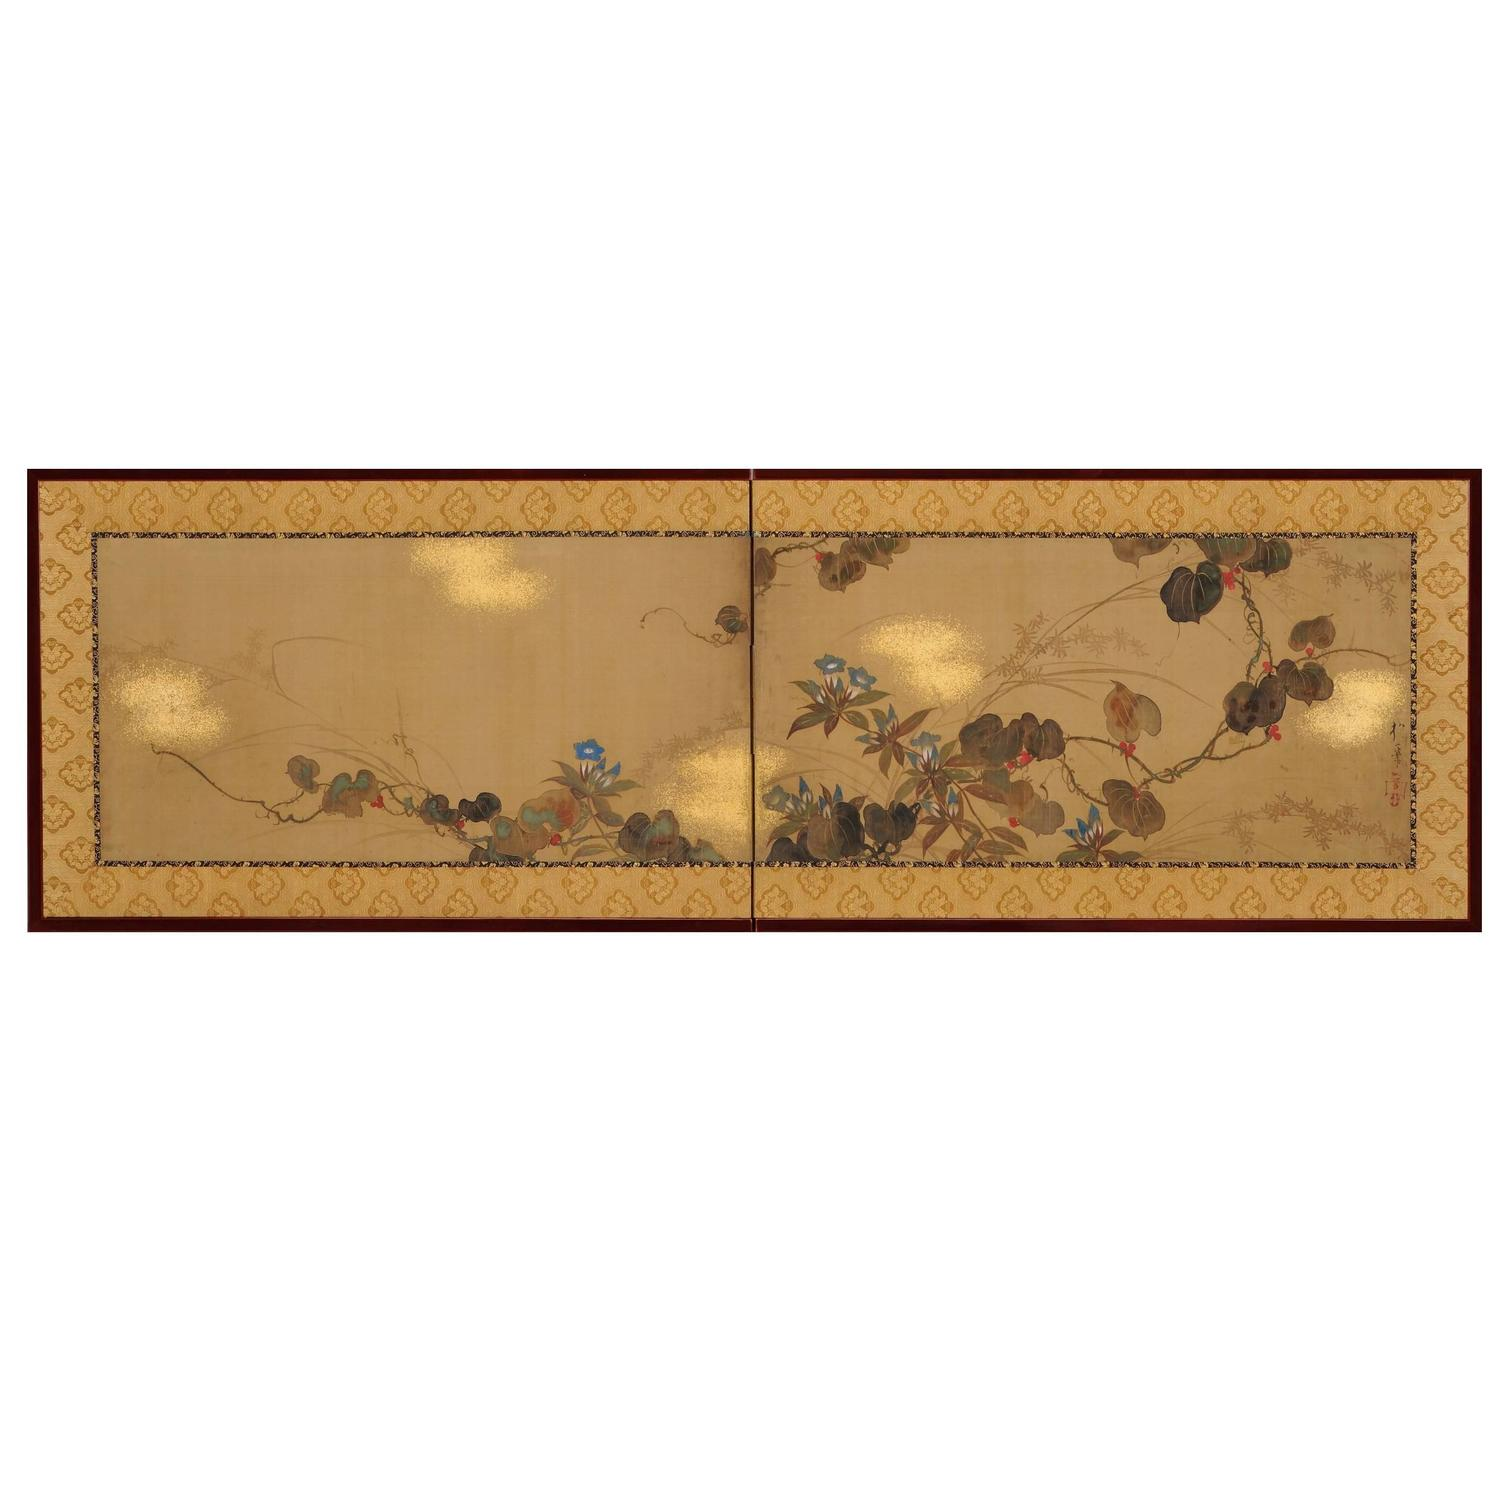 Antique japanese screens for sale - Sakai Hoitsu Autumn Flowers Japanese Screen Painting